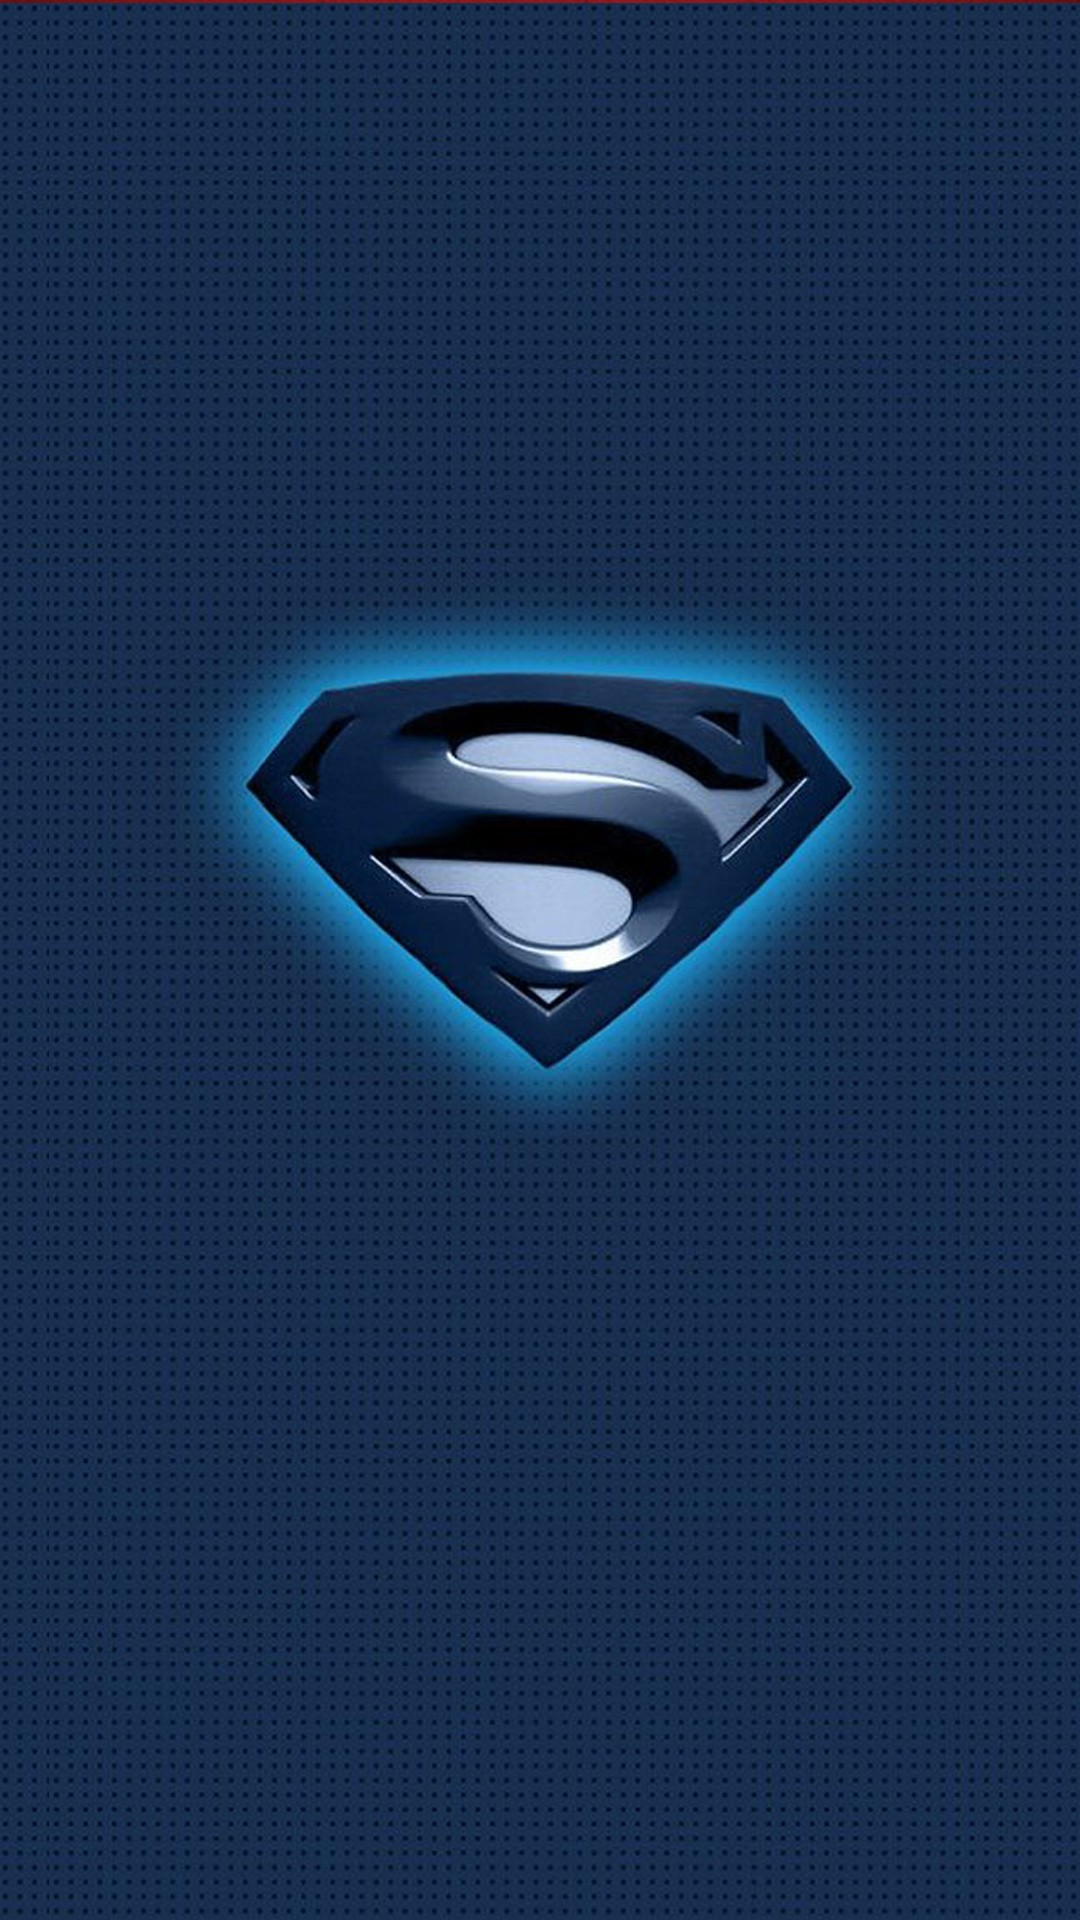 Superhero Wallpaper 14 1080x1920